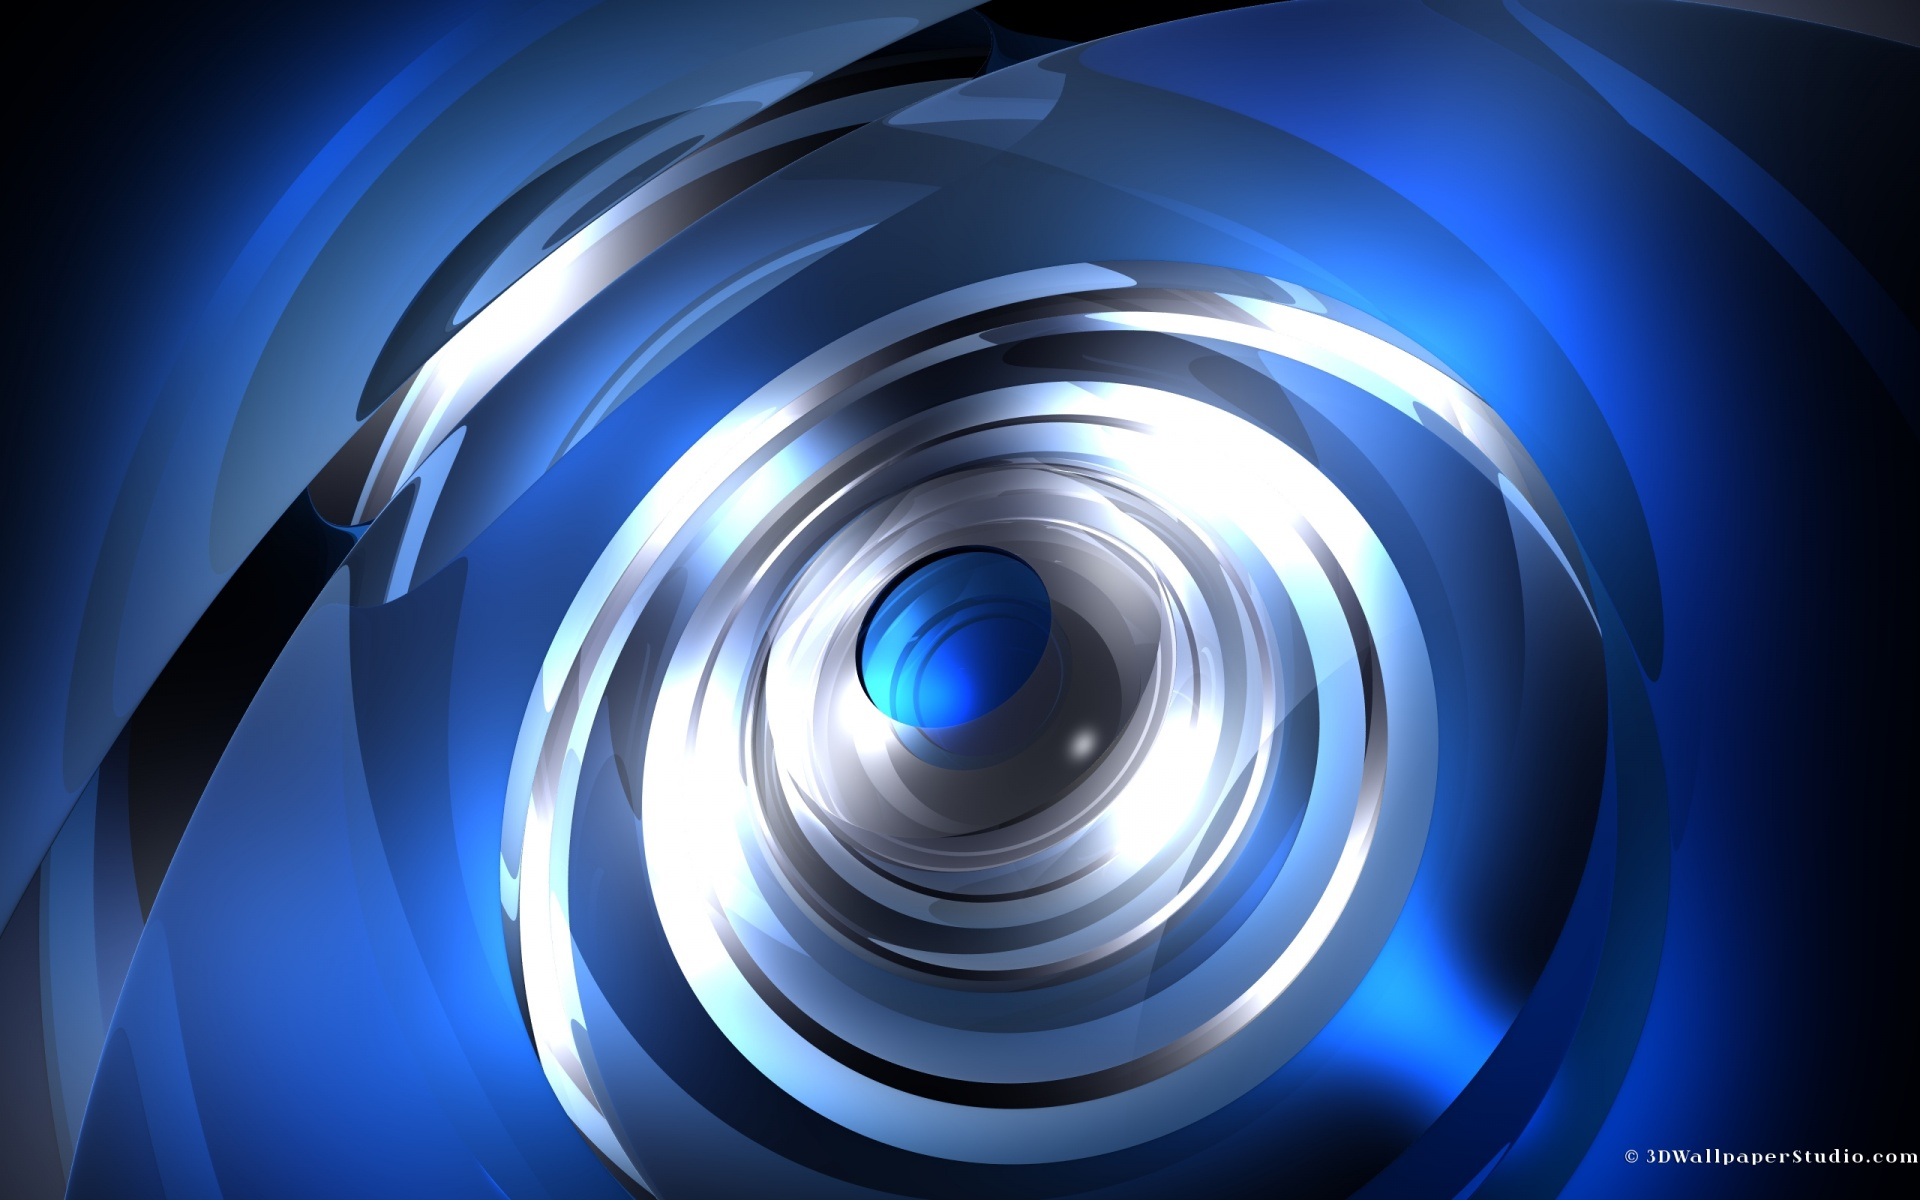 3D Wallpaper Moving blue 3d abstract 1920 x 1200 www 1920x1200